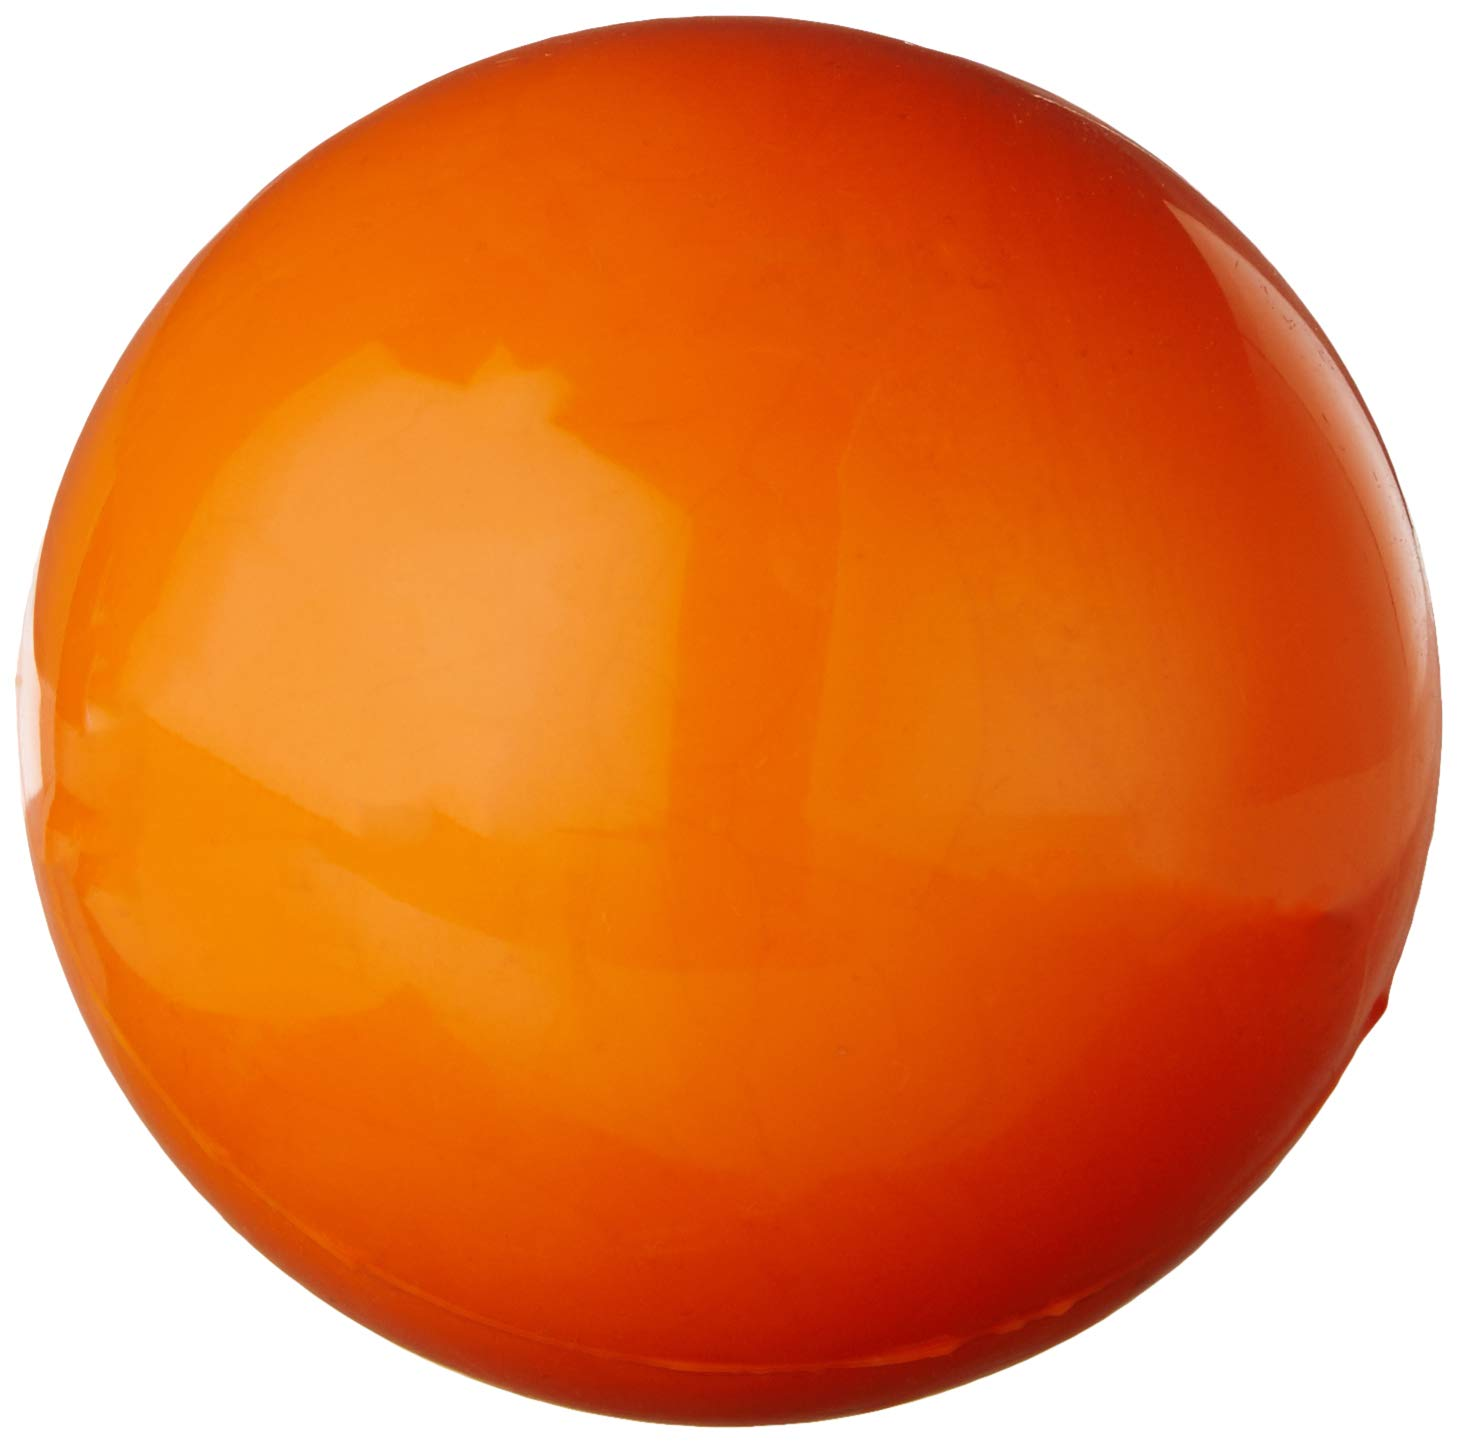 Indestructible Dog Ball – Lifetime Replacement Guarantee! – Tough Strong, 100% Non-Toxic Chew Toy, Natural Rubber Baseball-Sized Bouncy Dog Ball for Aggressive Chewers and Large Dogs